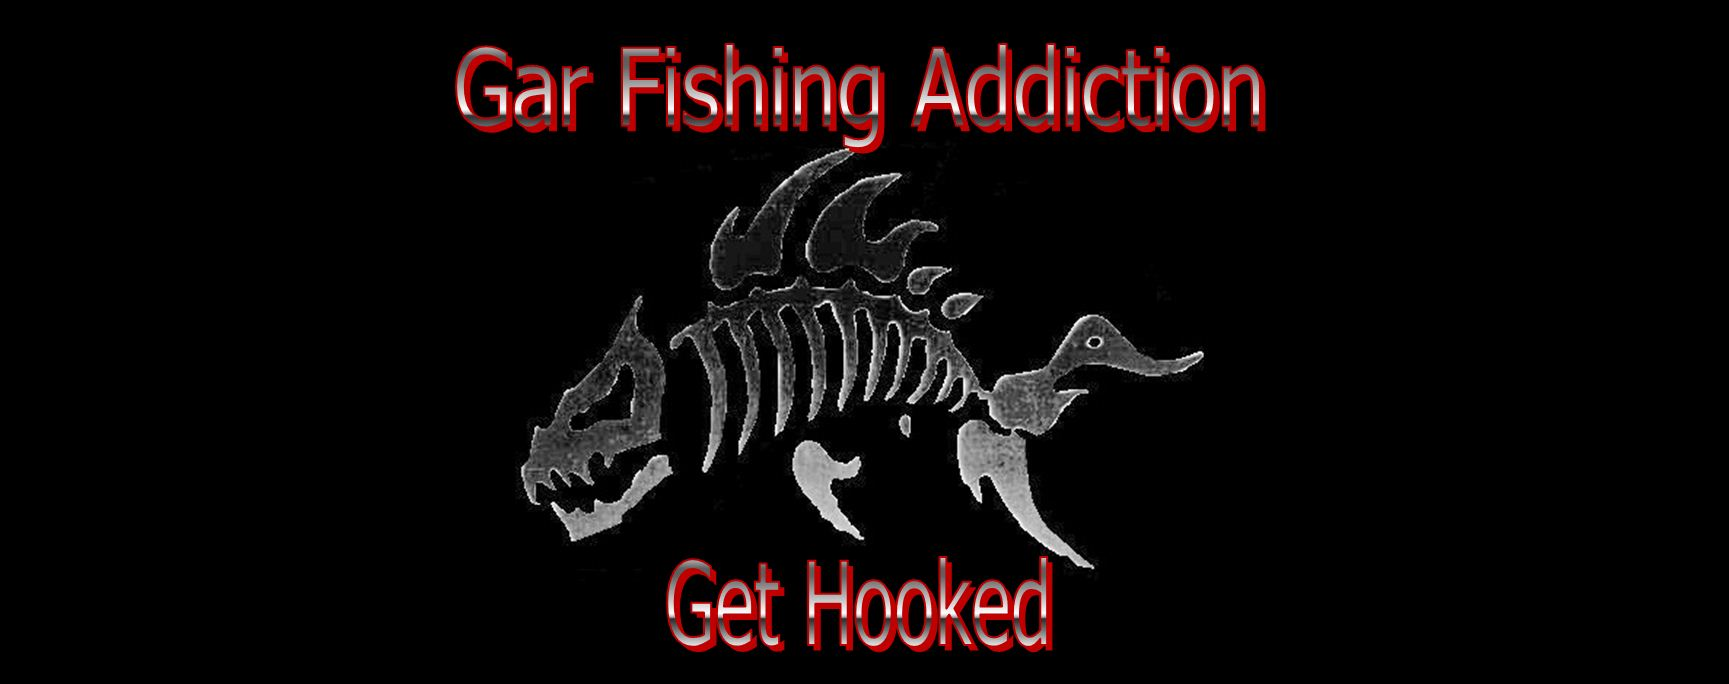 gar fishing addiction